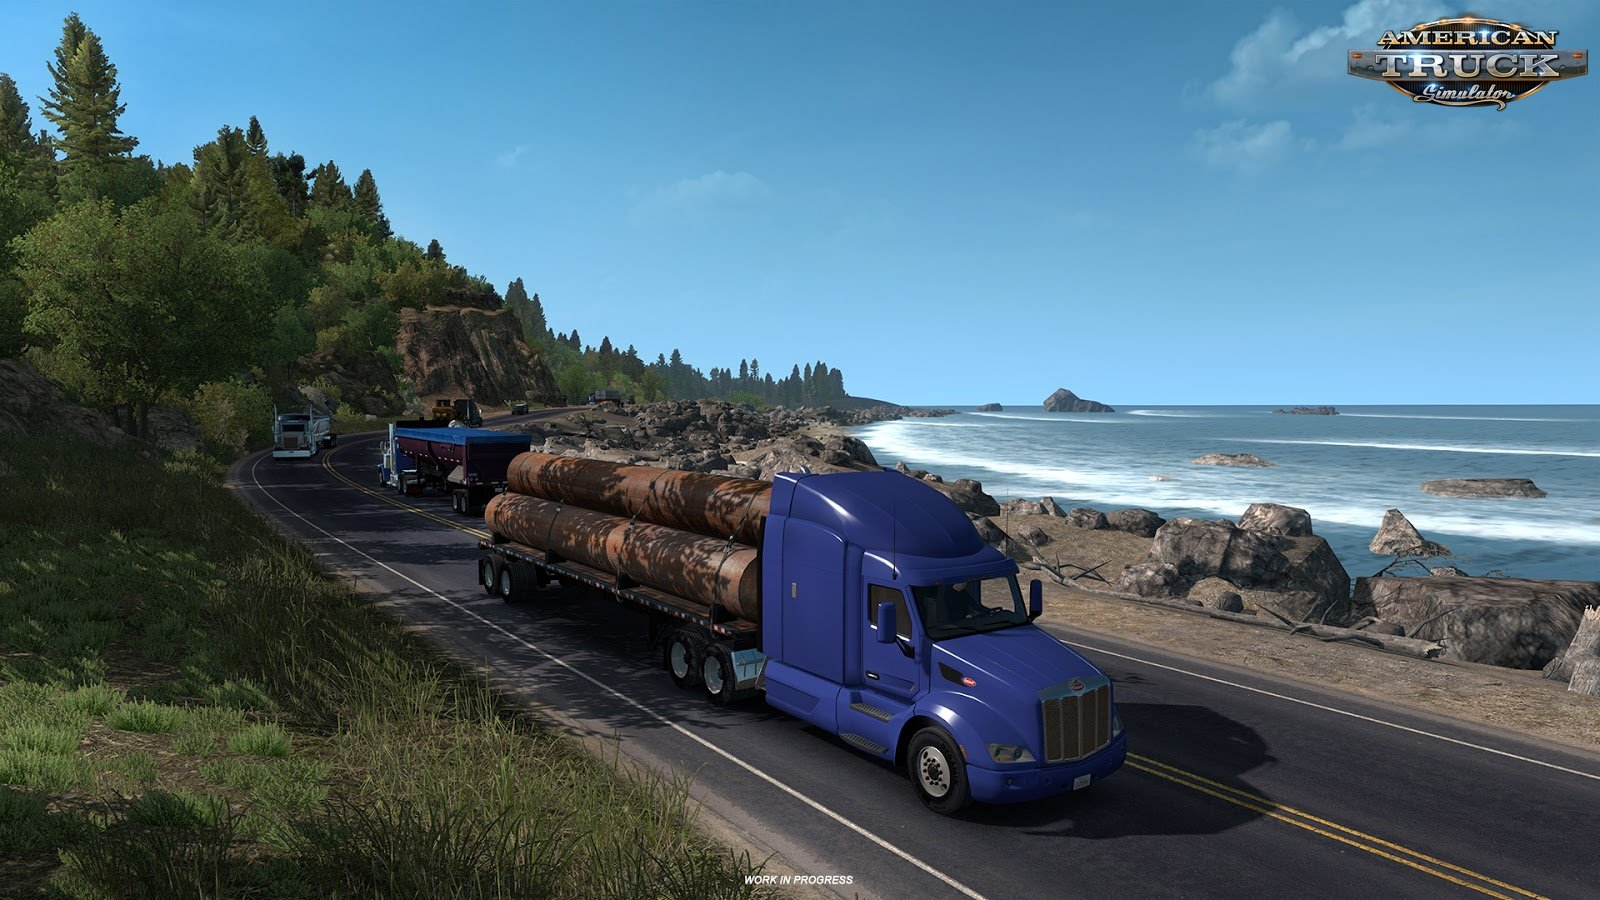 Oregon: Scenic road 101 (Work in progress)